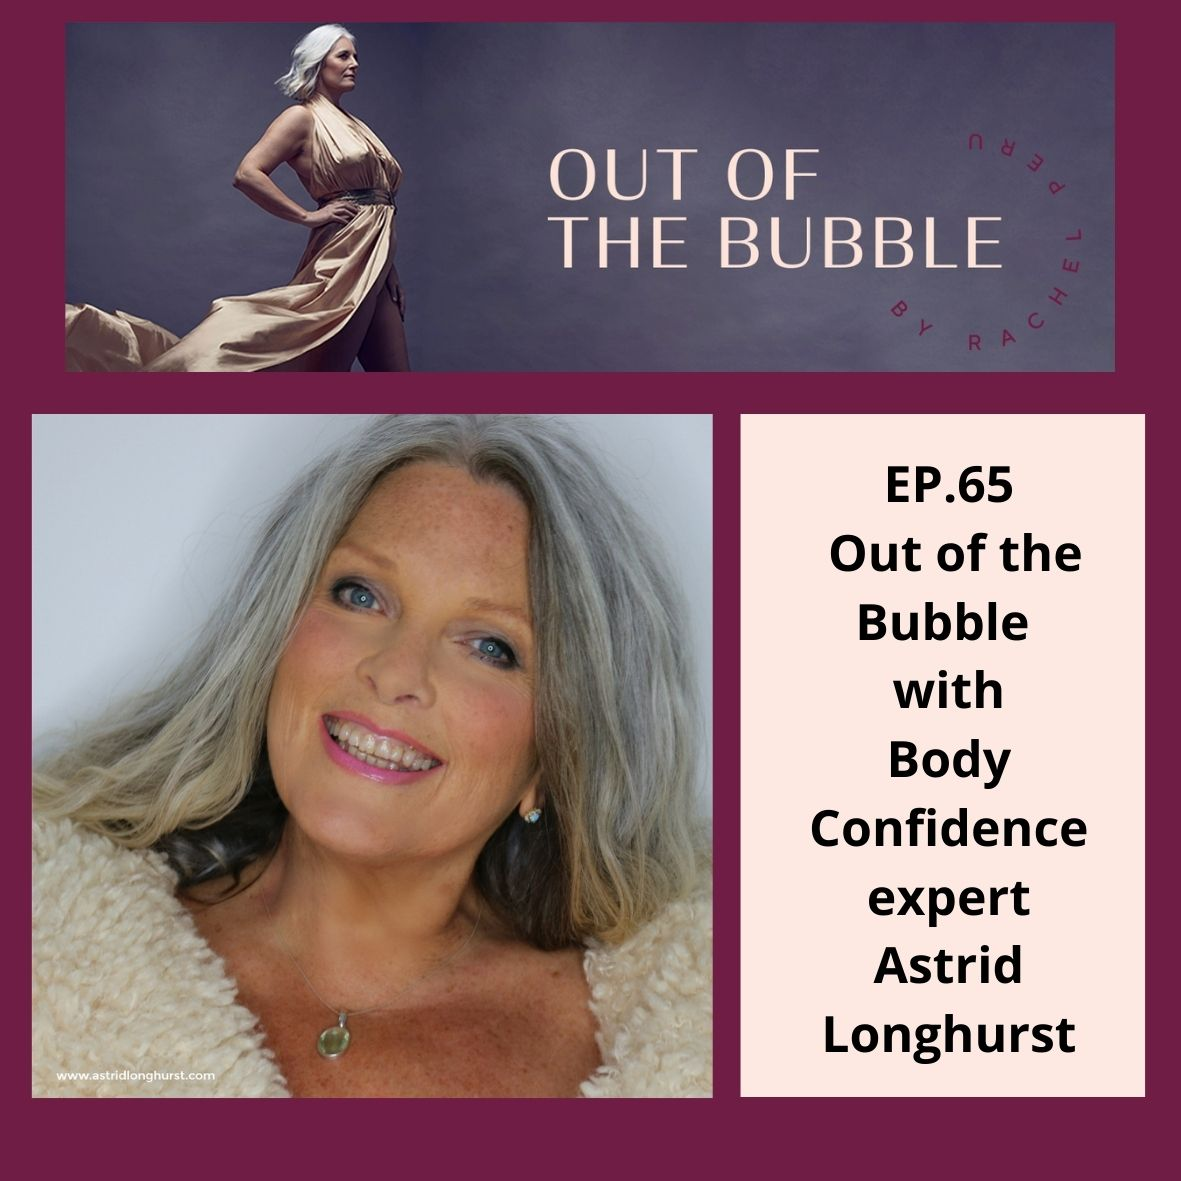 Ep.65- Out of the Bubble with body confidence expert Astrid Longhurst